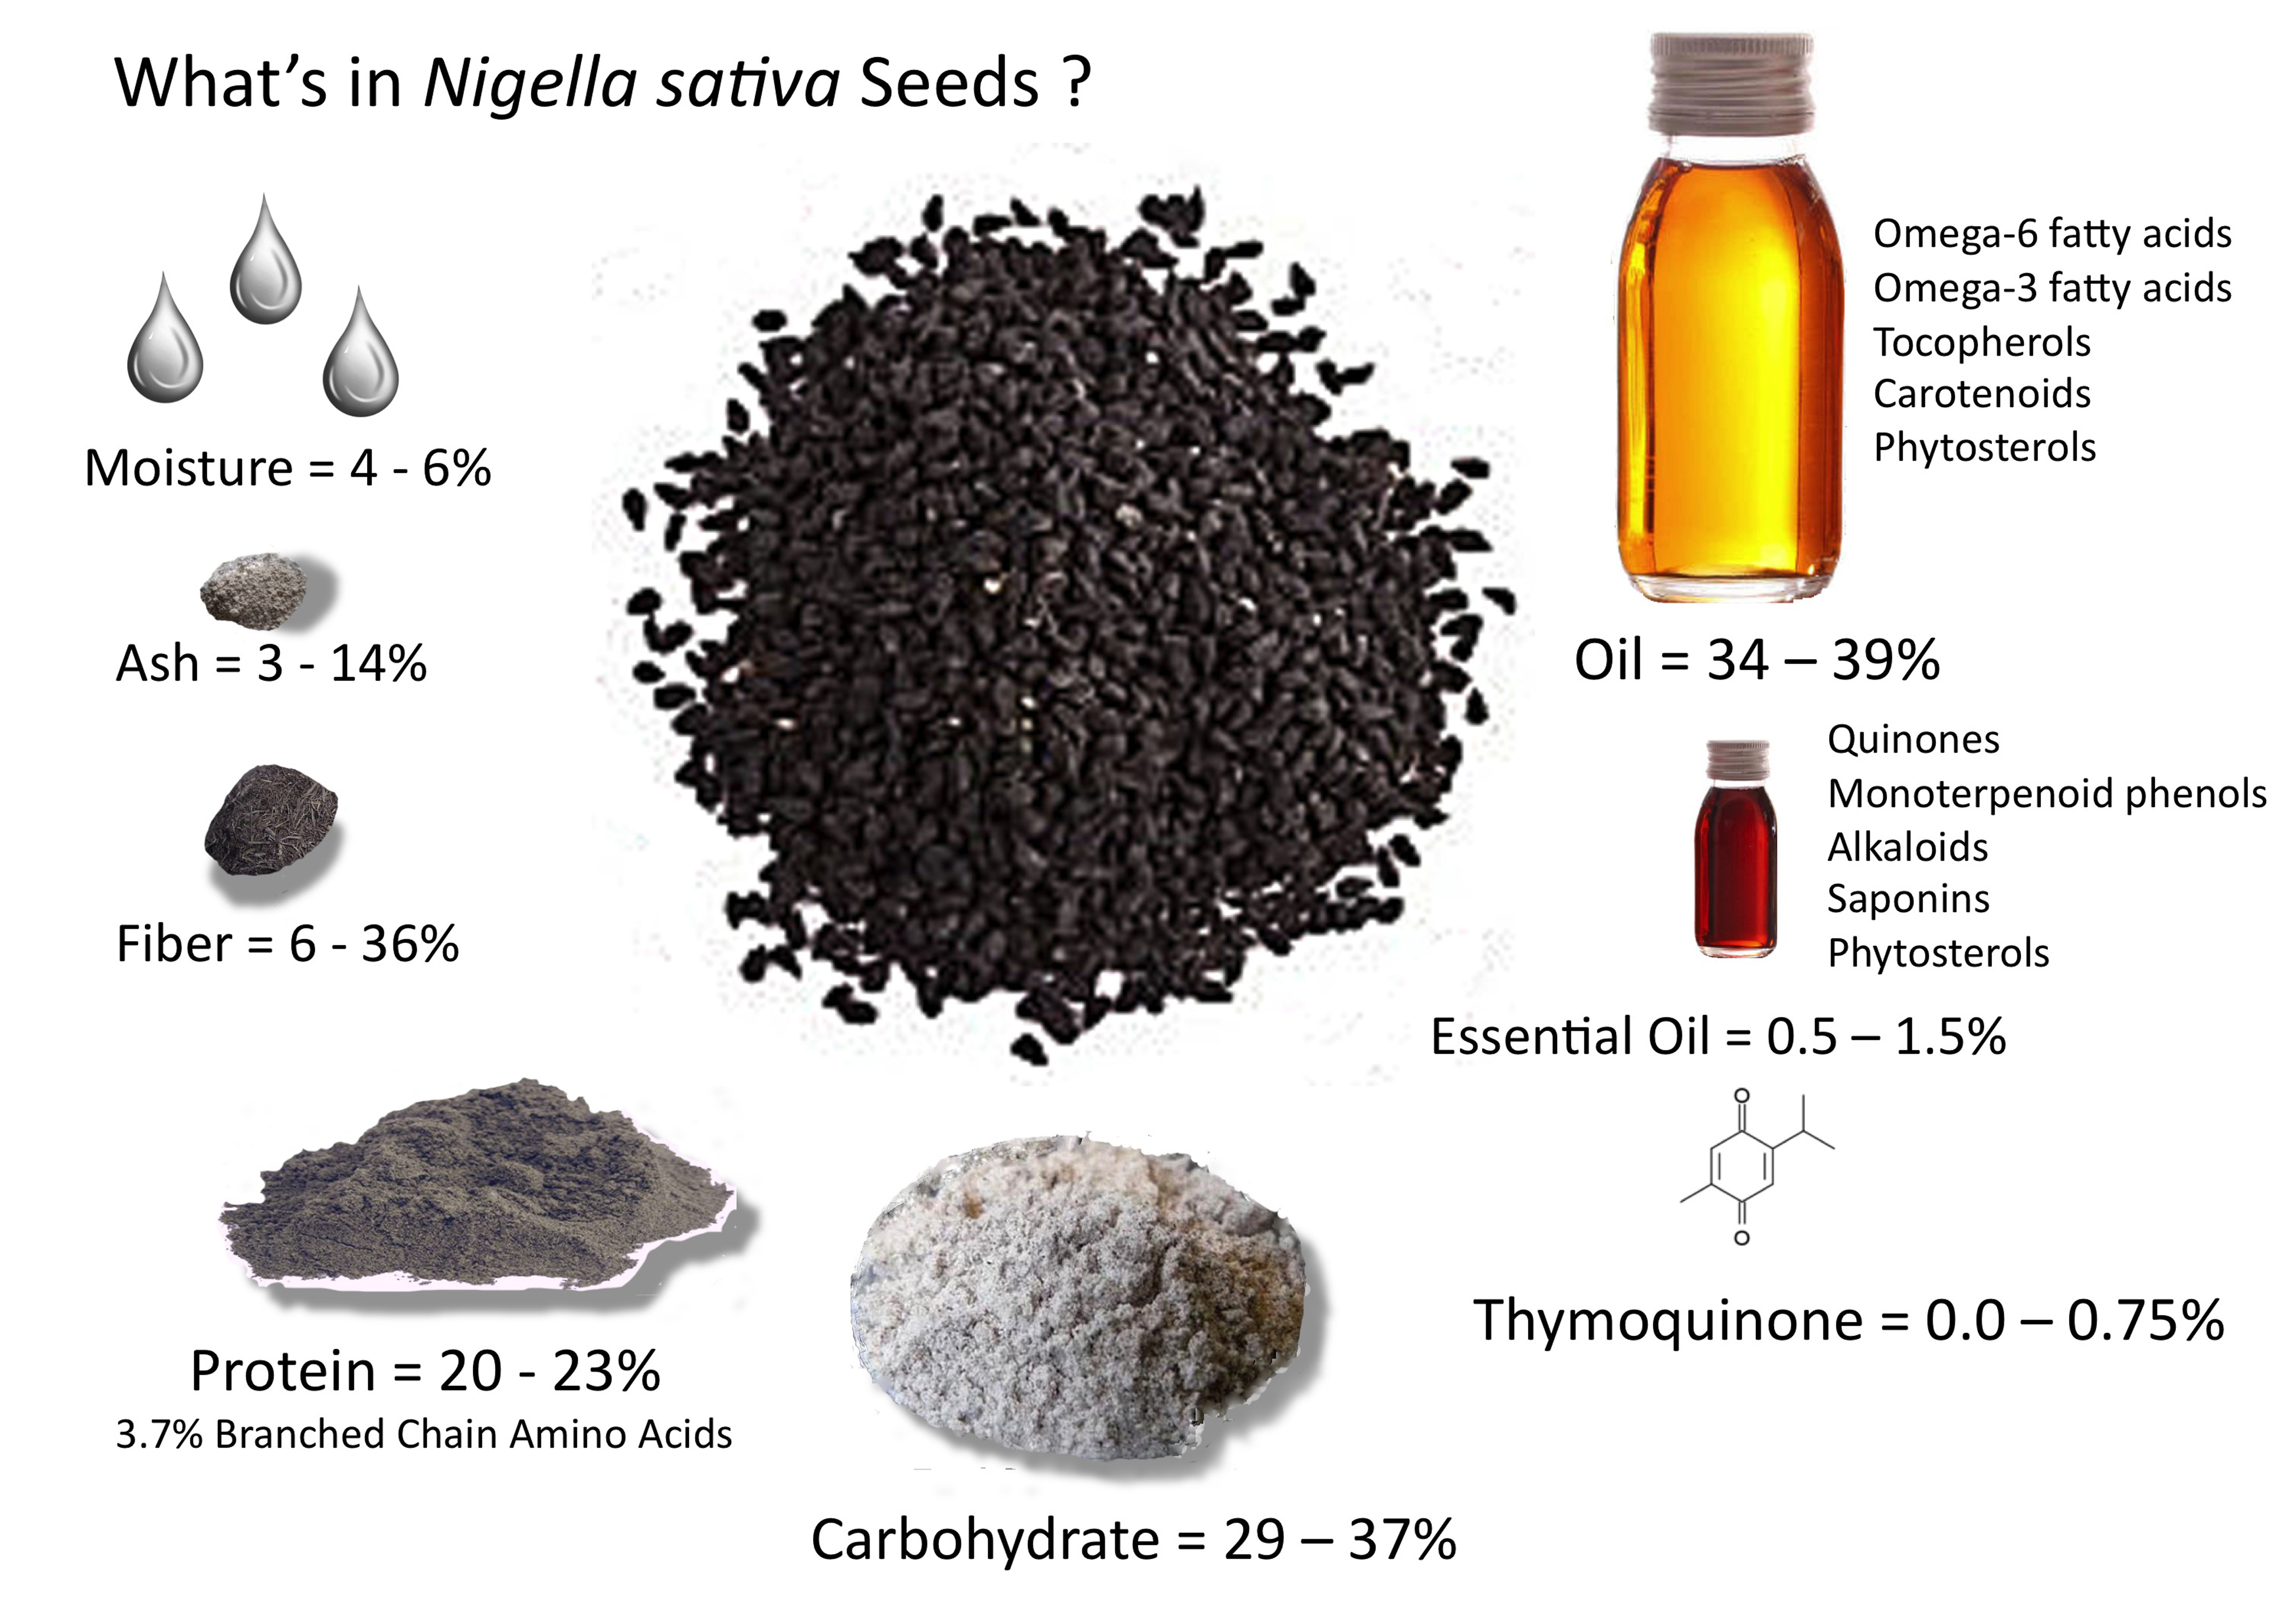 Amazing Health Benefits of Black Cumin Seed, Black Seed, Nigella Sativa